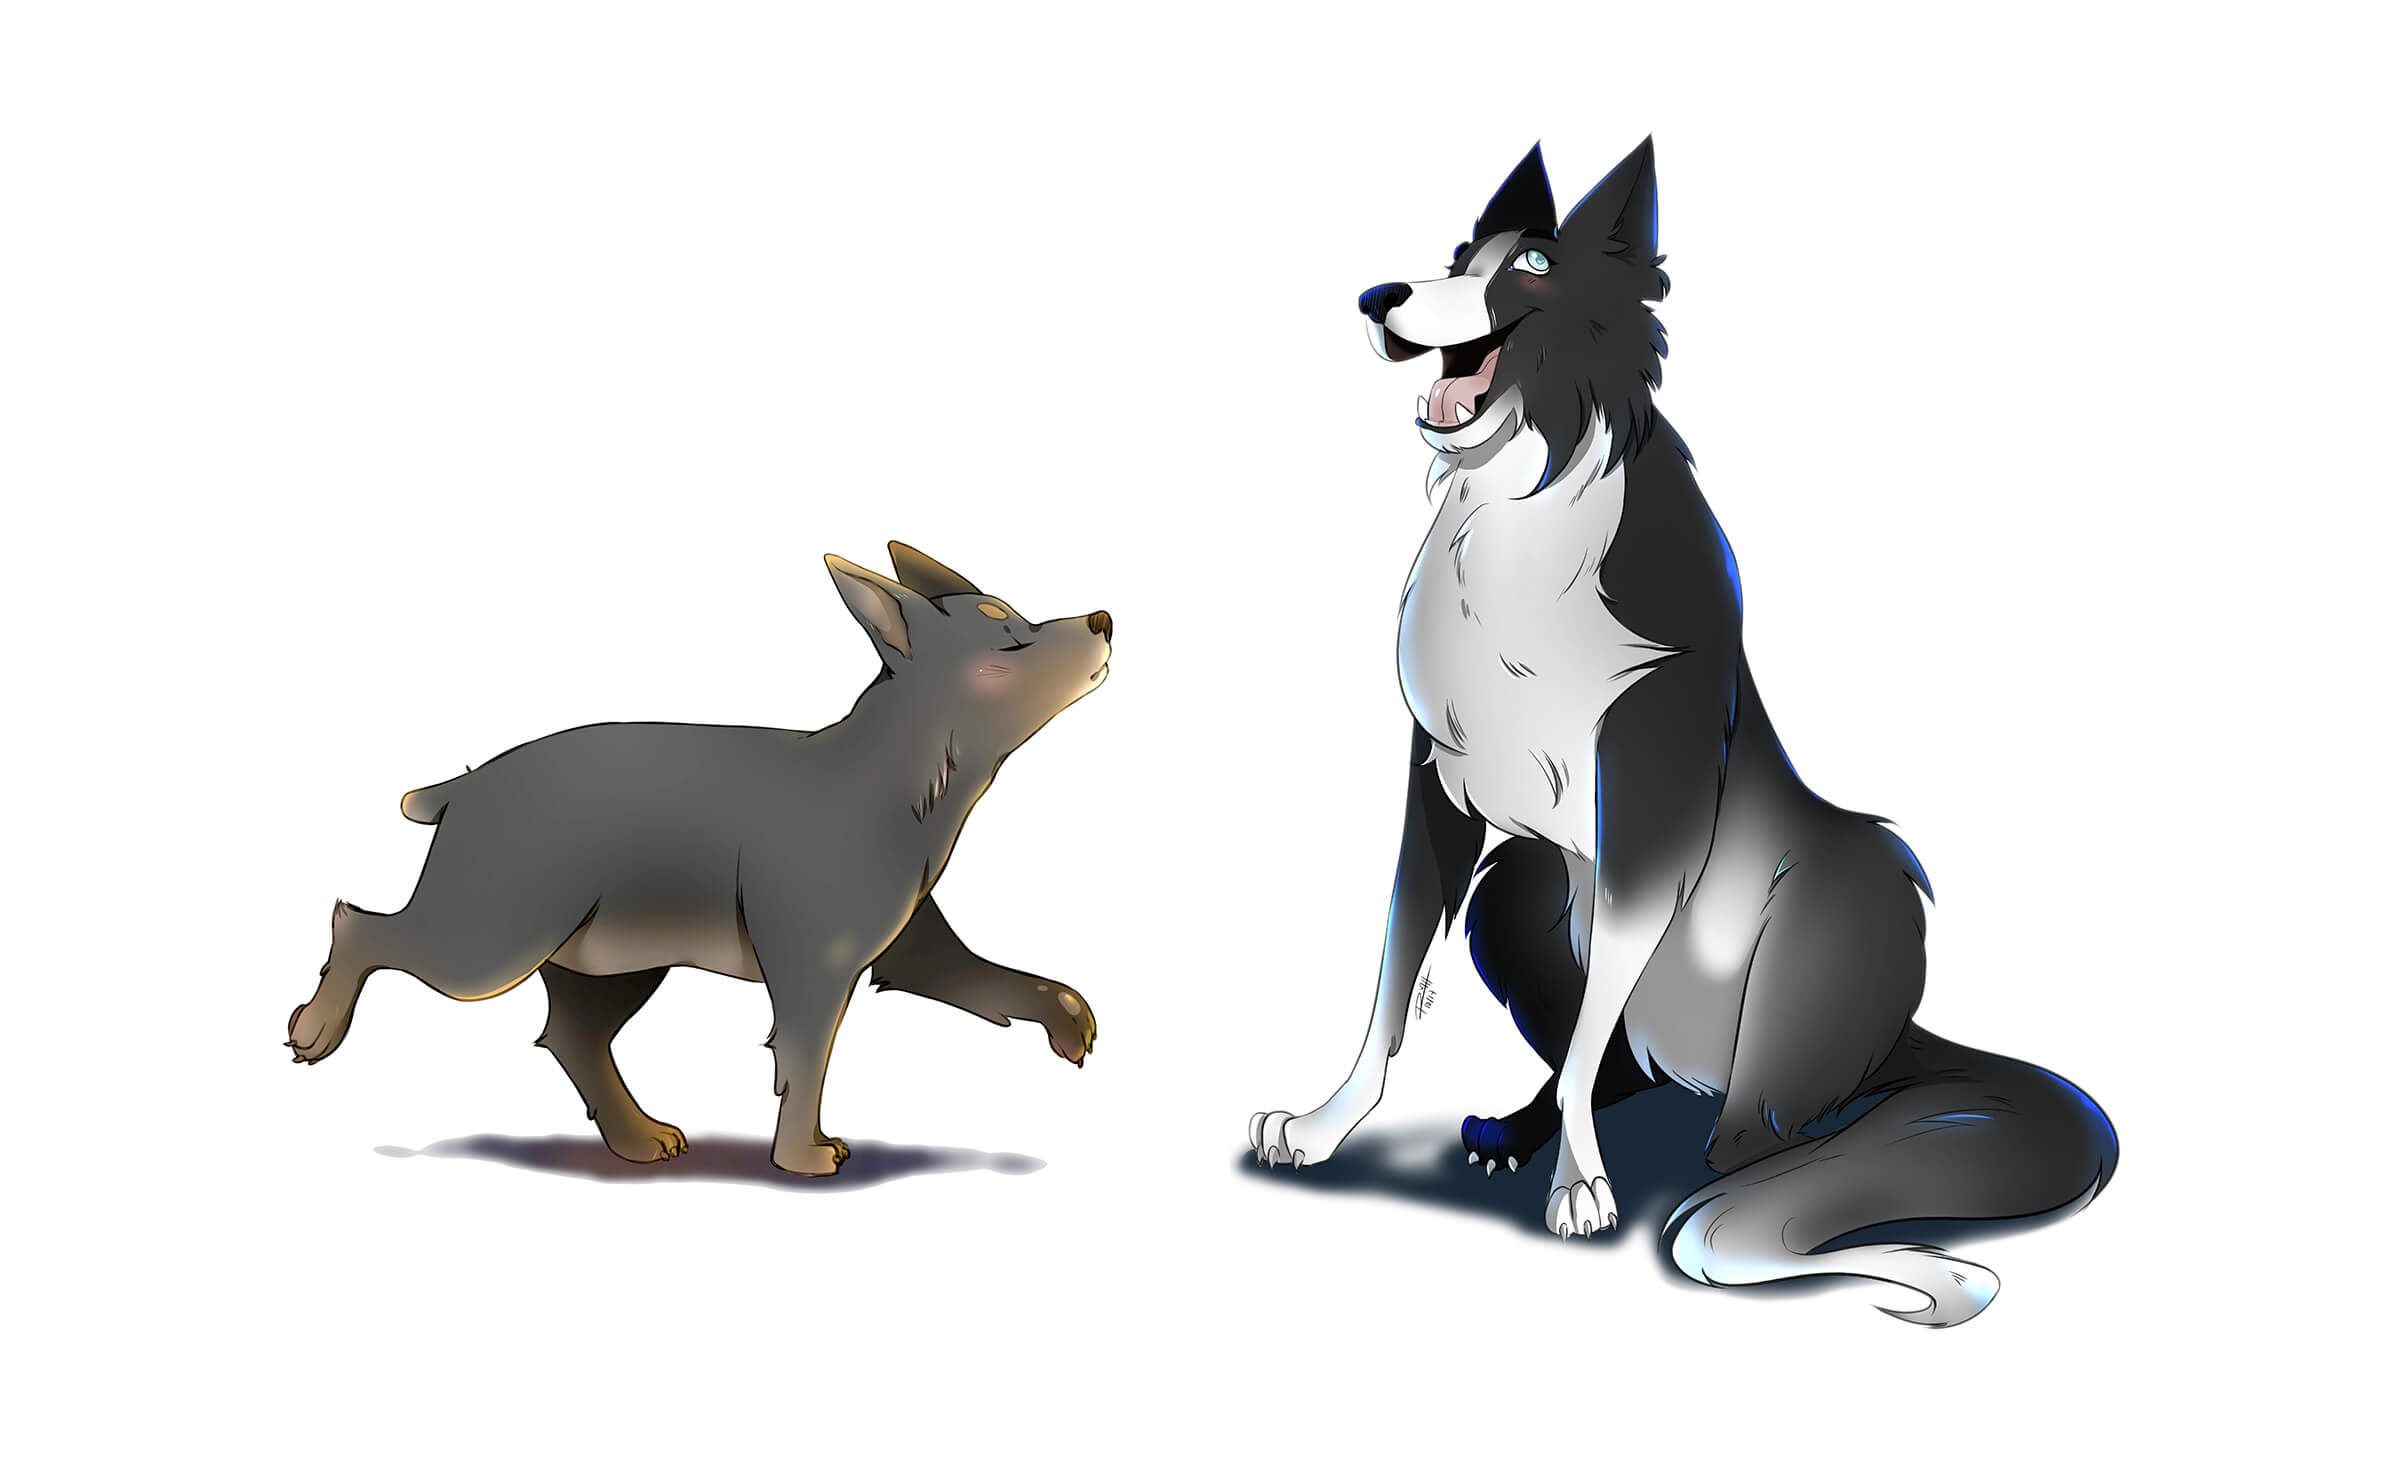 Digital painting of two cartoon dogs, a brown dog trotting aloof, and a black-and-white dog happily sitting.